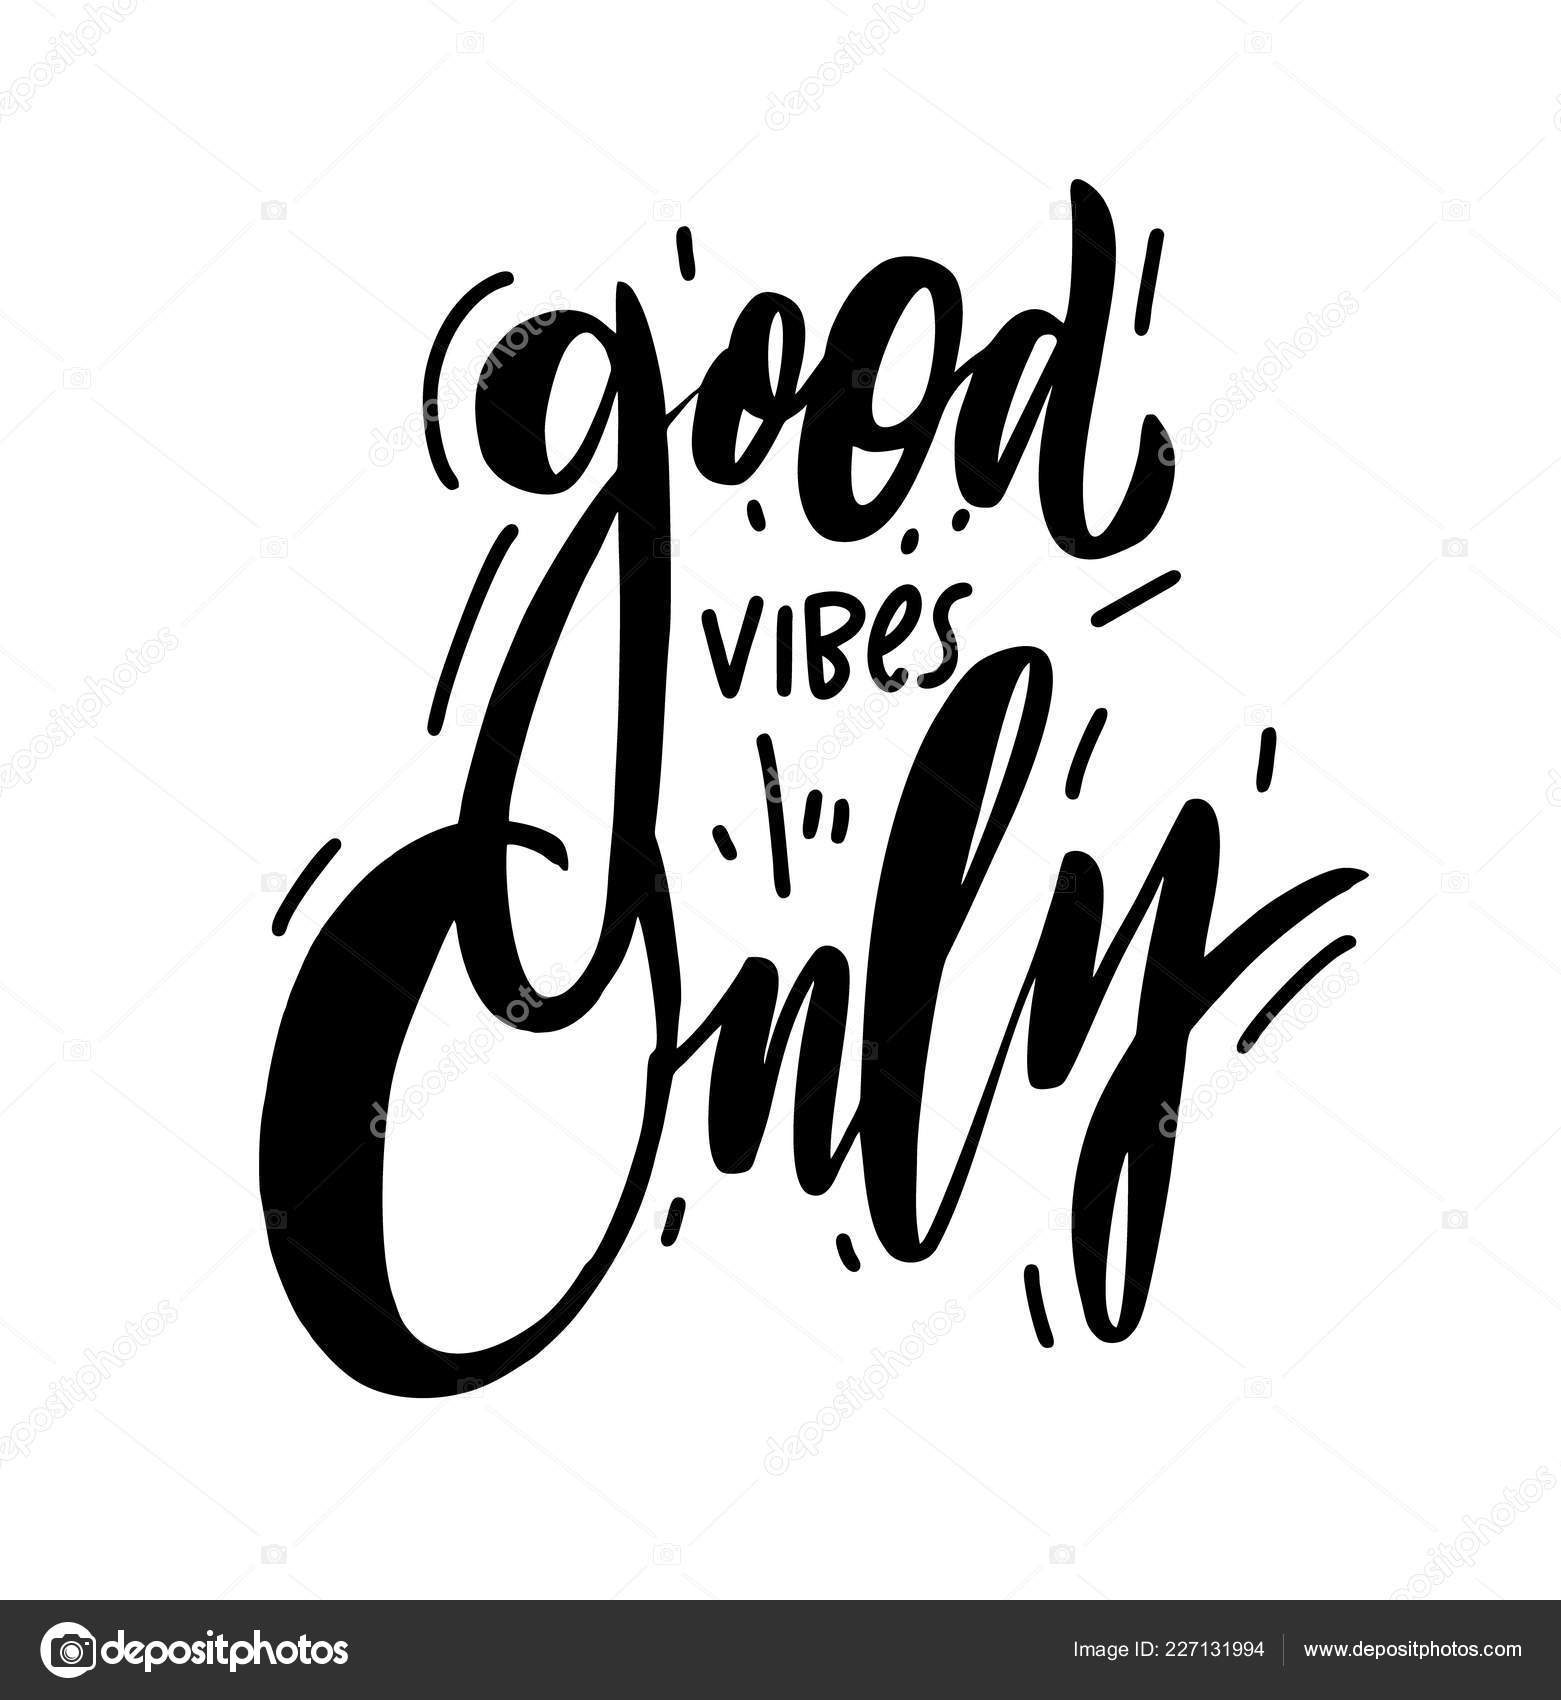 Good Vibes Only Wallpaper Good Vibes Only Modern Calligraphy Black Ink Isolated On White Background Stock Vector C Octyarb 227131994